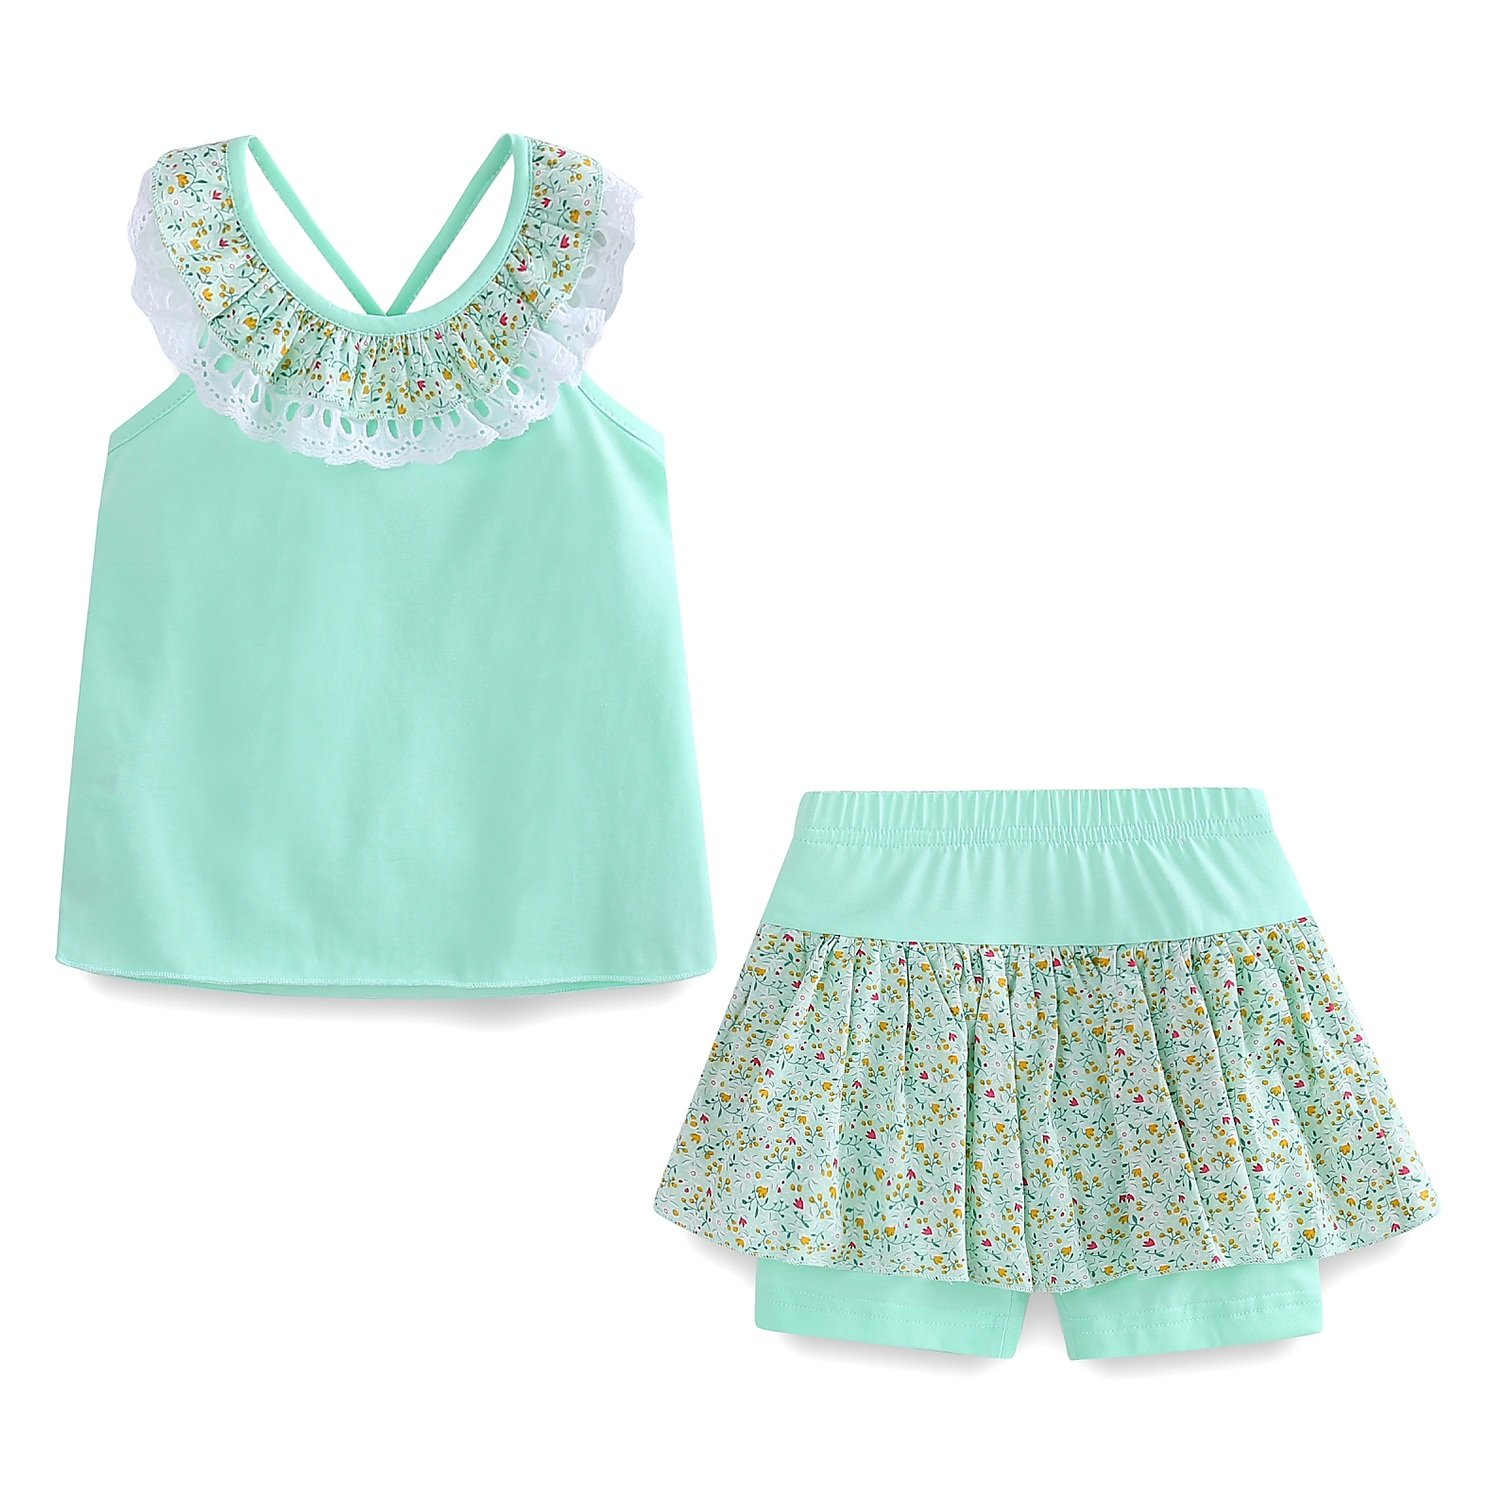 Mud Kingdom Clothes for Girls 4T Mint Green Summer